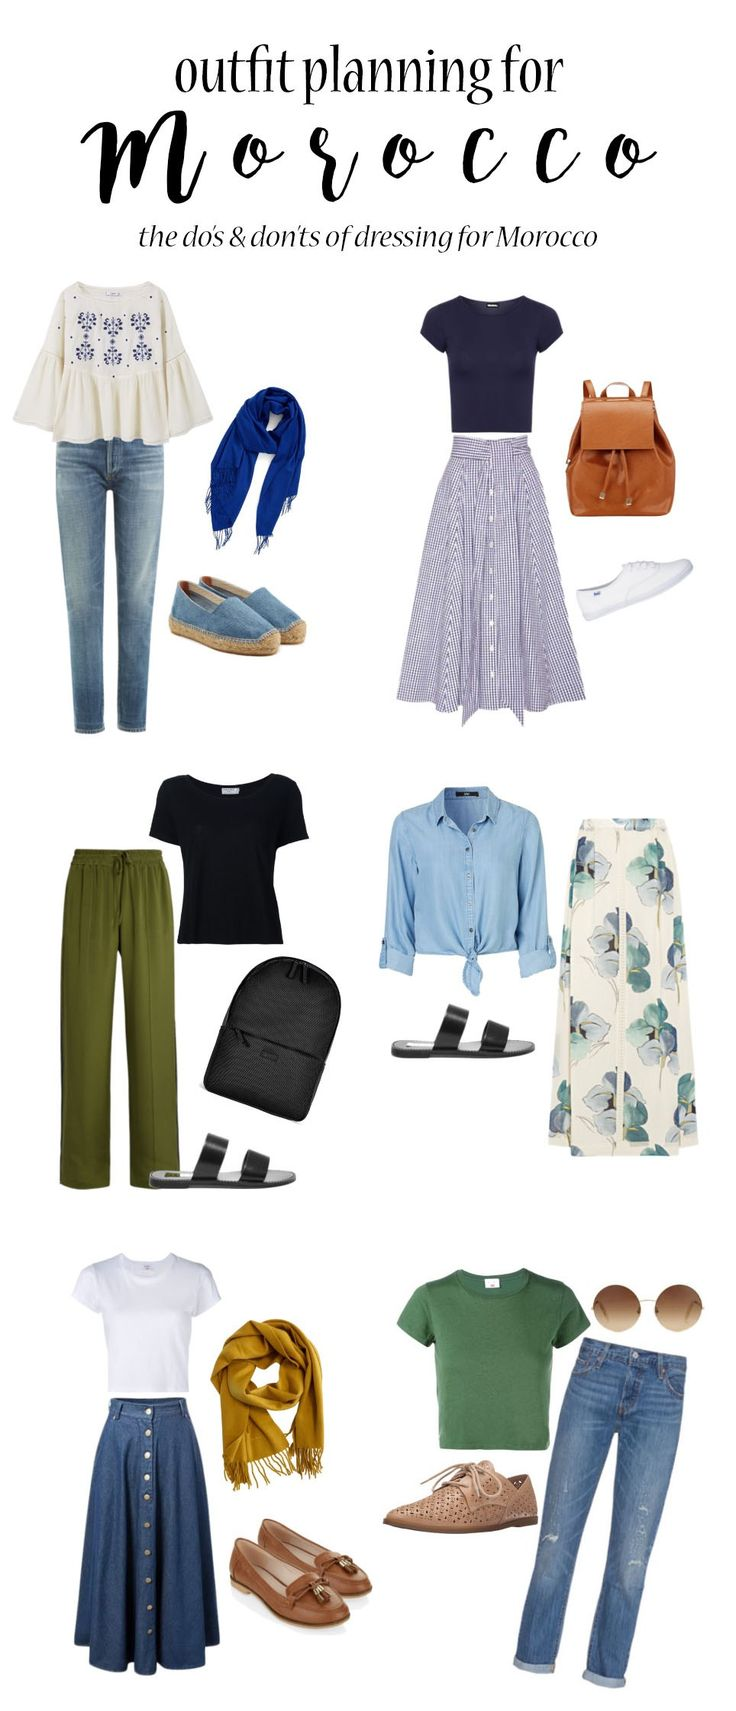 MOROCCO – Modest outfits for Morocco & tips for what to pack